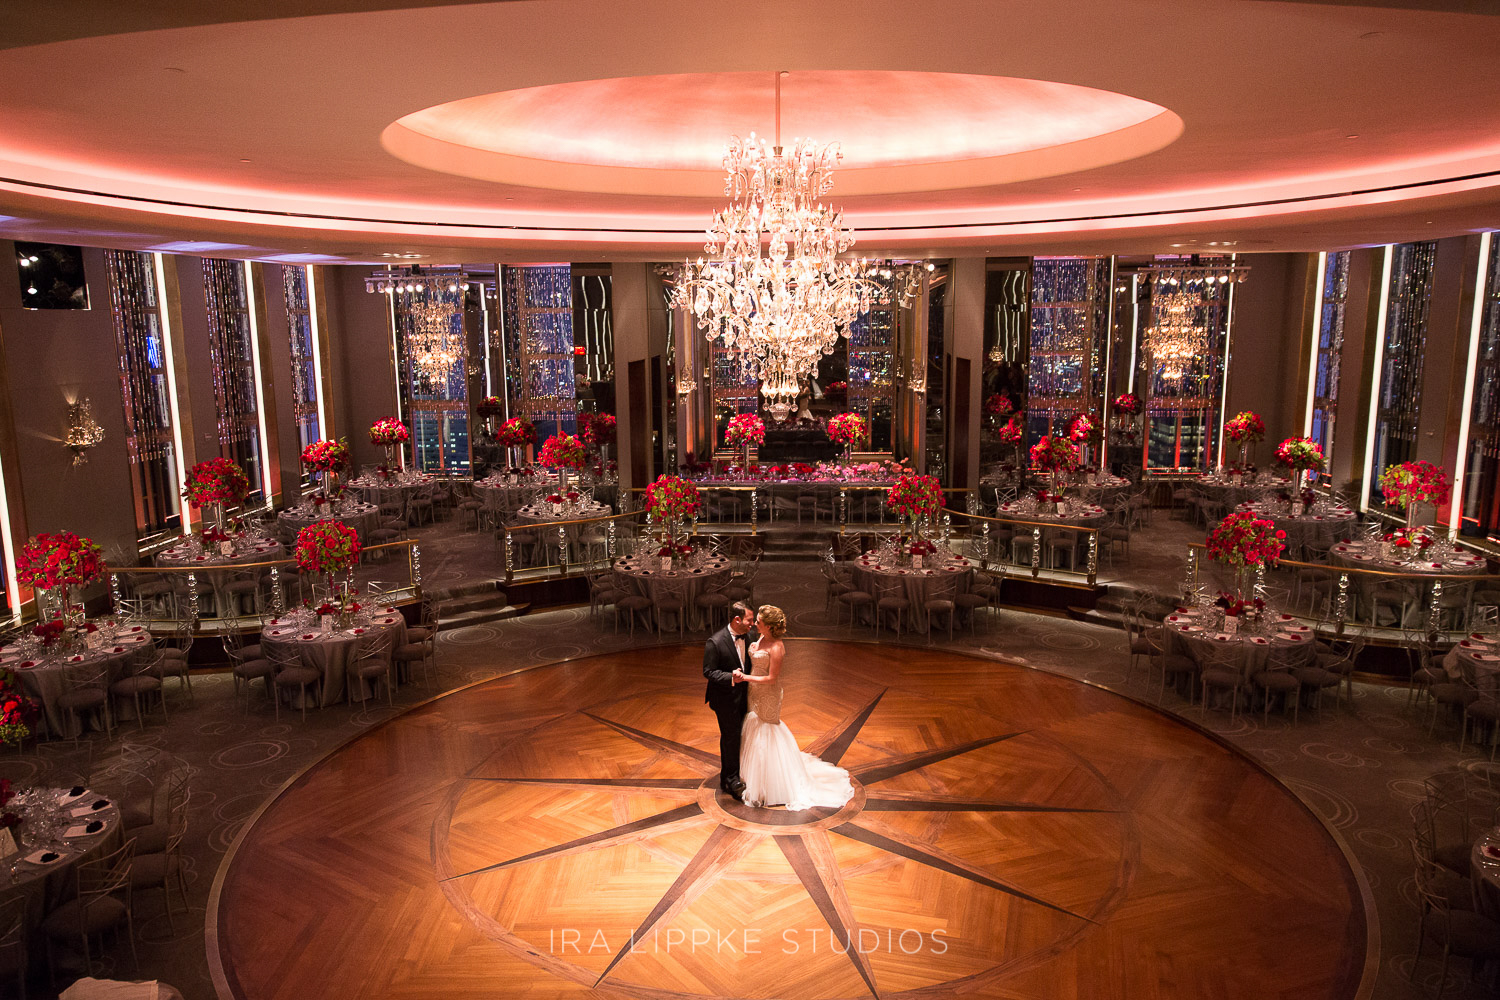 Rainbow Room Wedding - Amy Katz Events